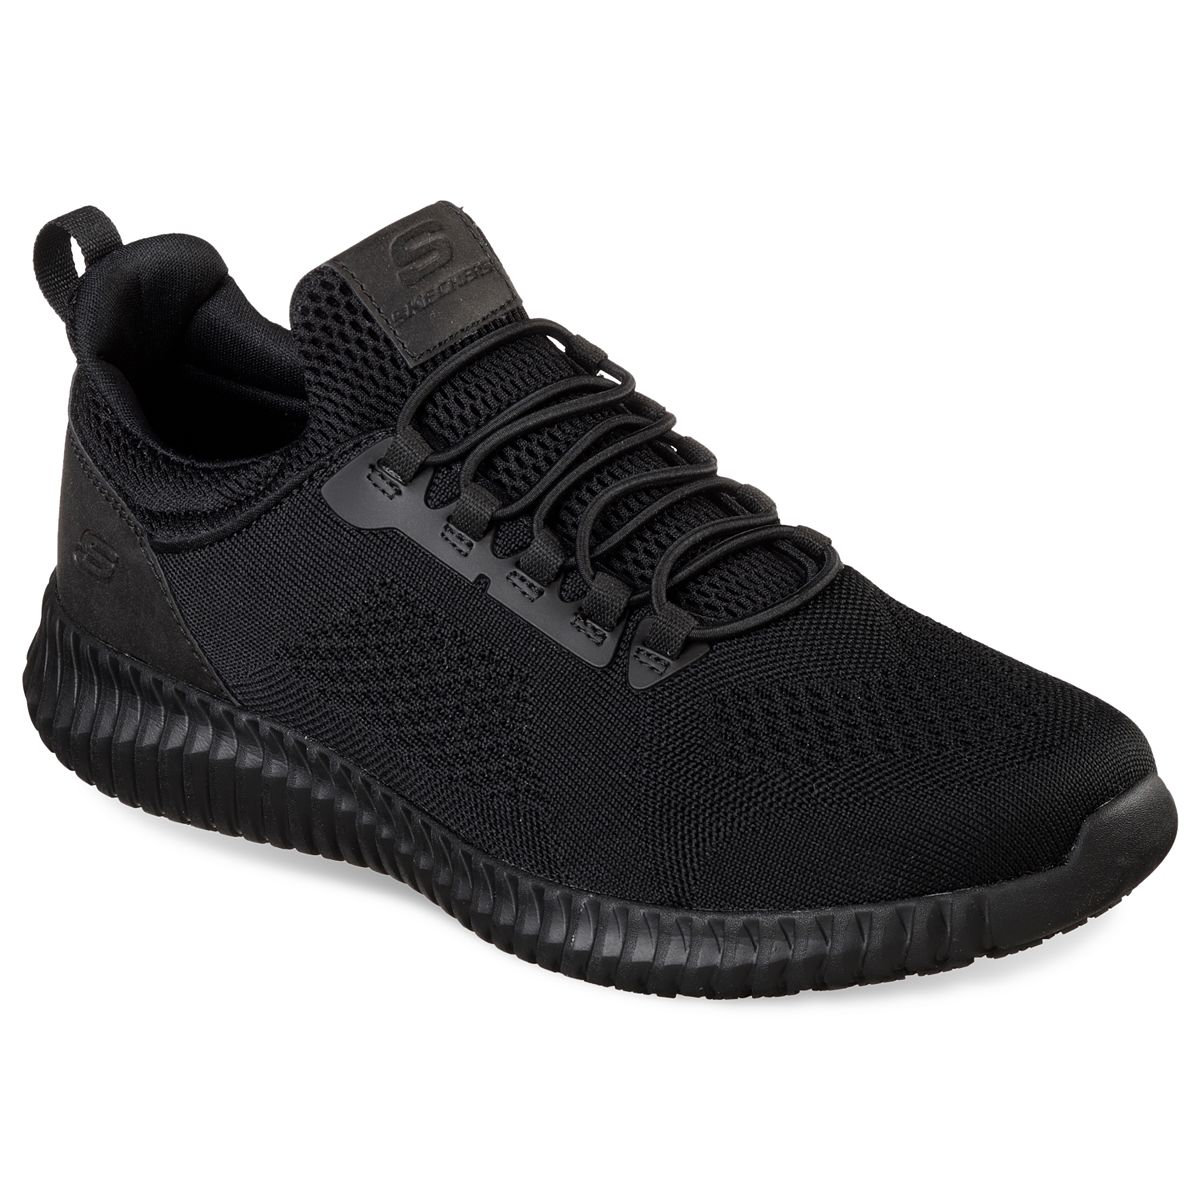 Skechers Work® Relaxed Fit® Cessnock SR Men's Shoes (Was $75, Now $69.99)